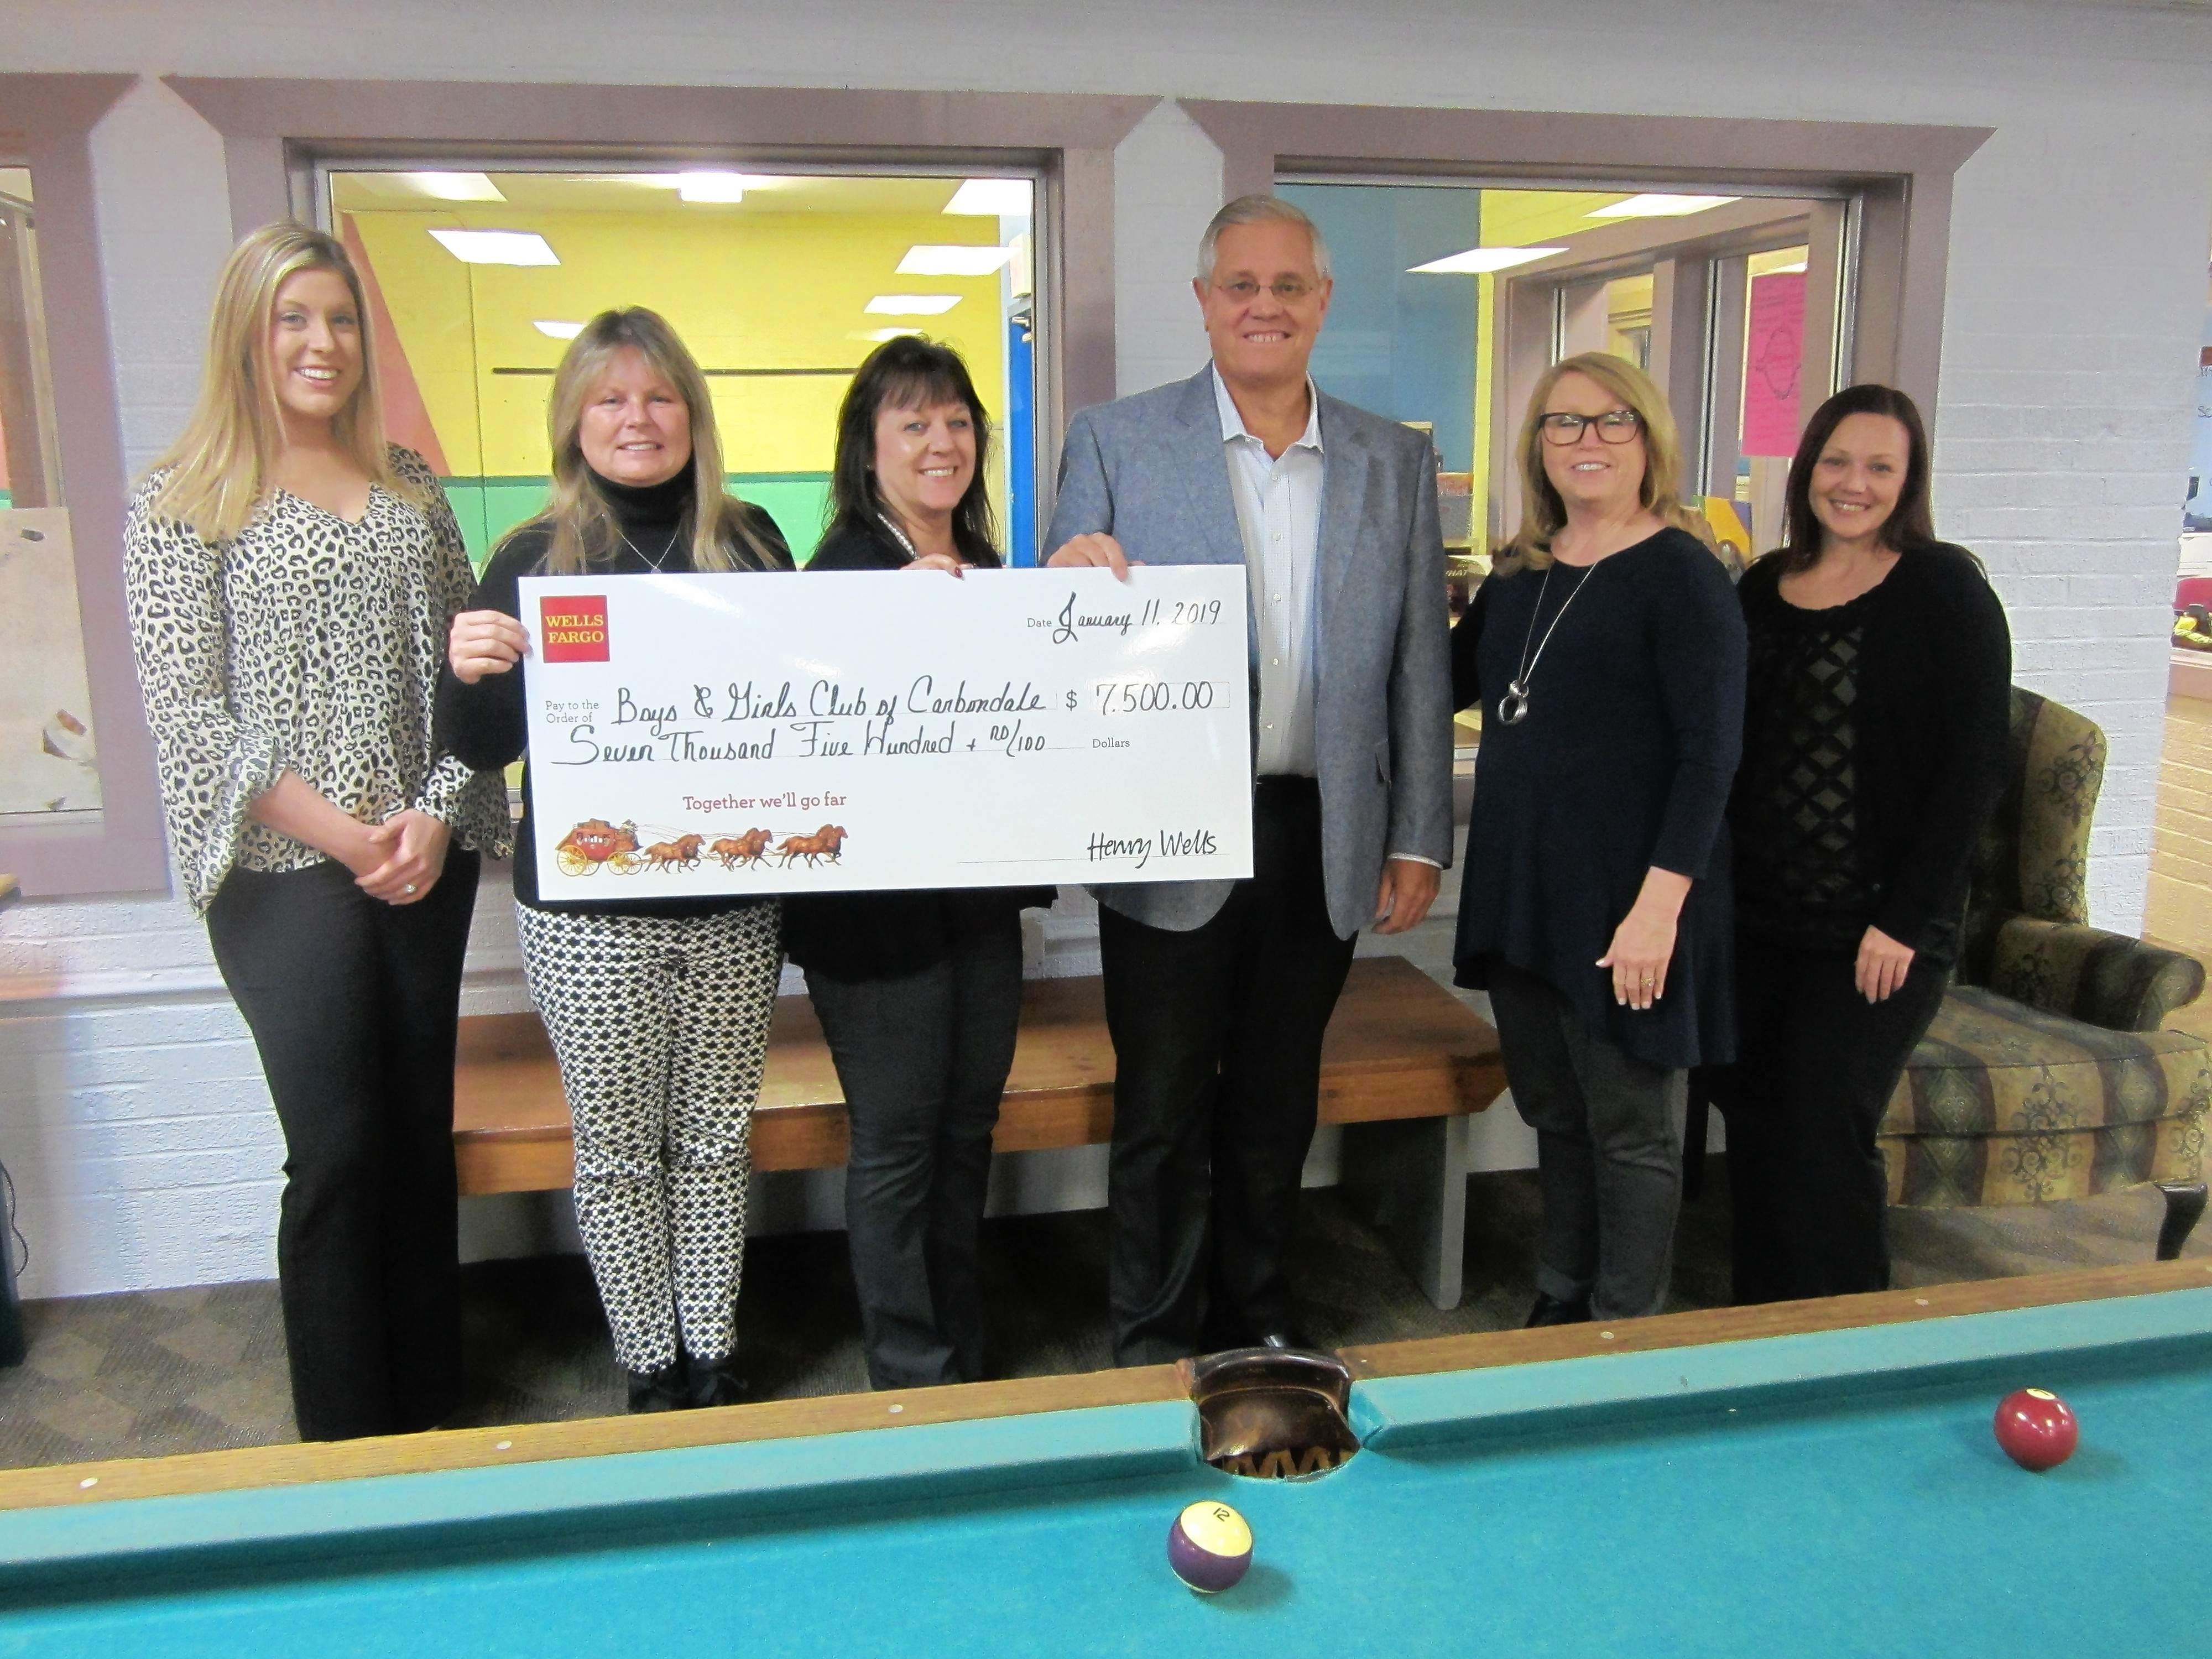 The Boys and Girls Club of Carbondale has been awarded a $7,500 Wells Fargo grant.